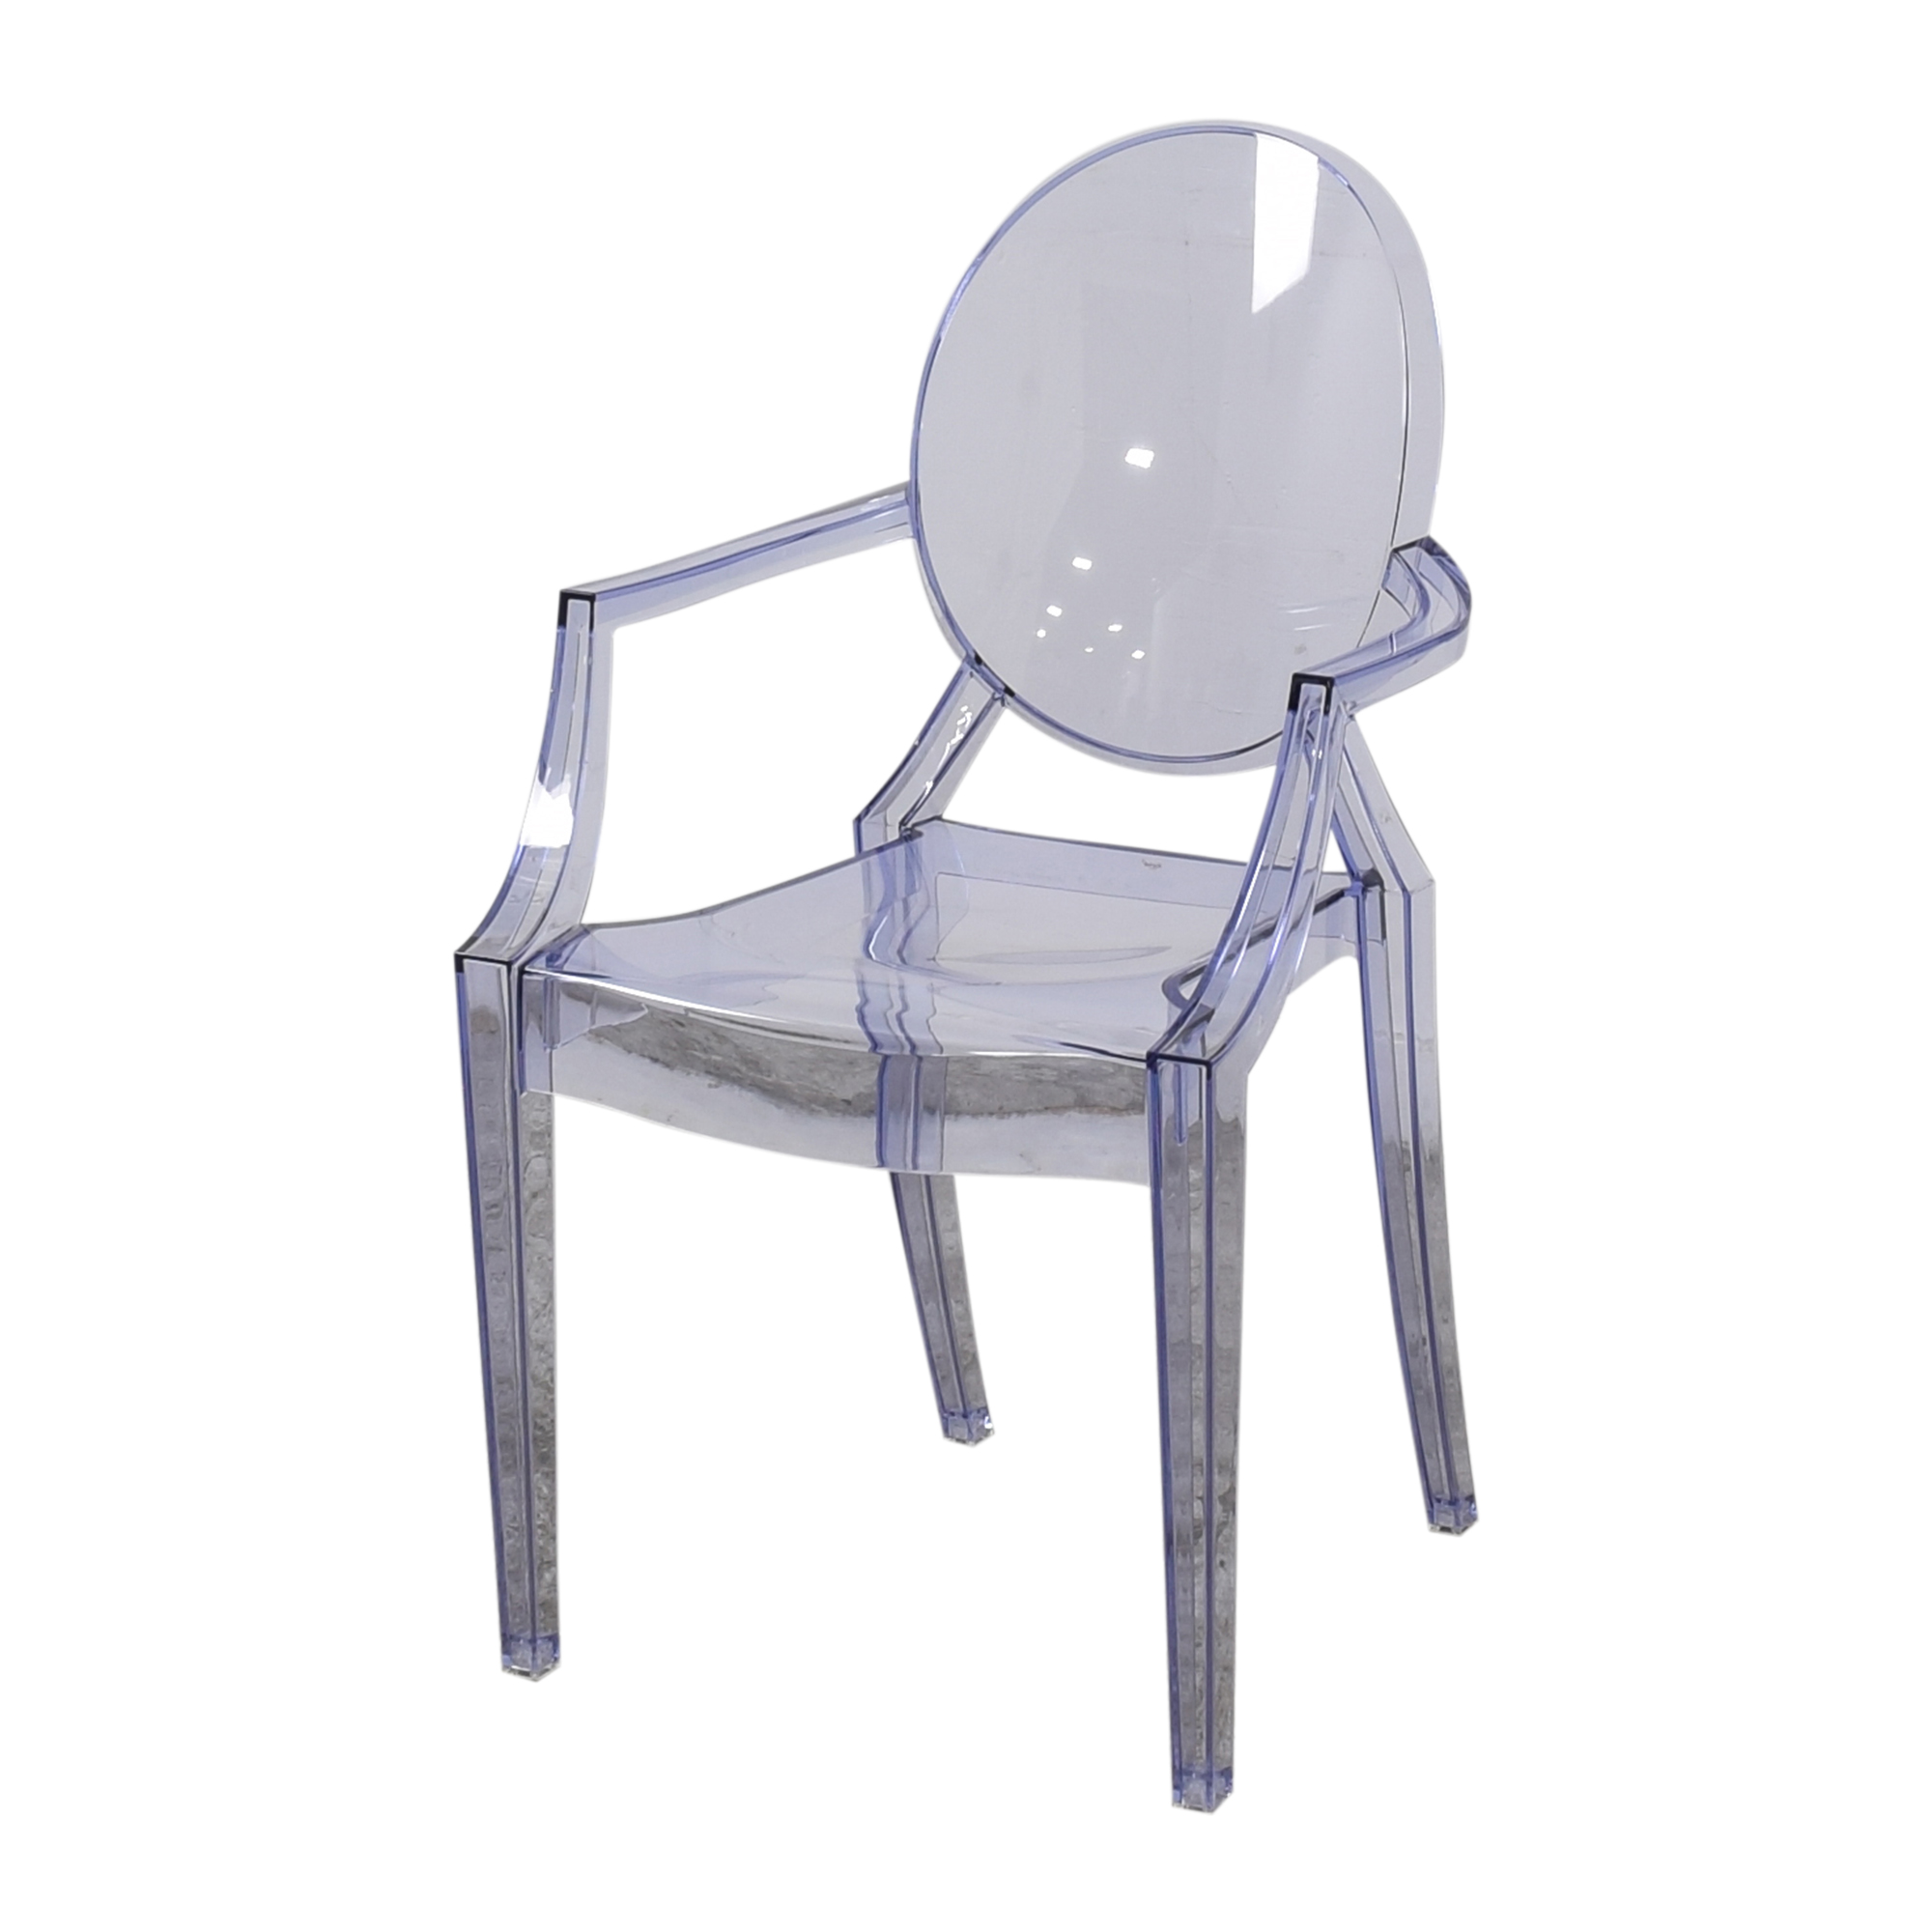 Kartell Kartell Louis Ghost Chairs second hand